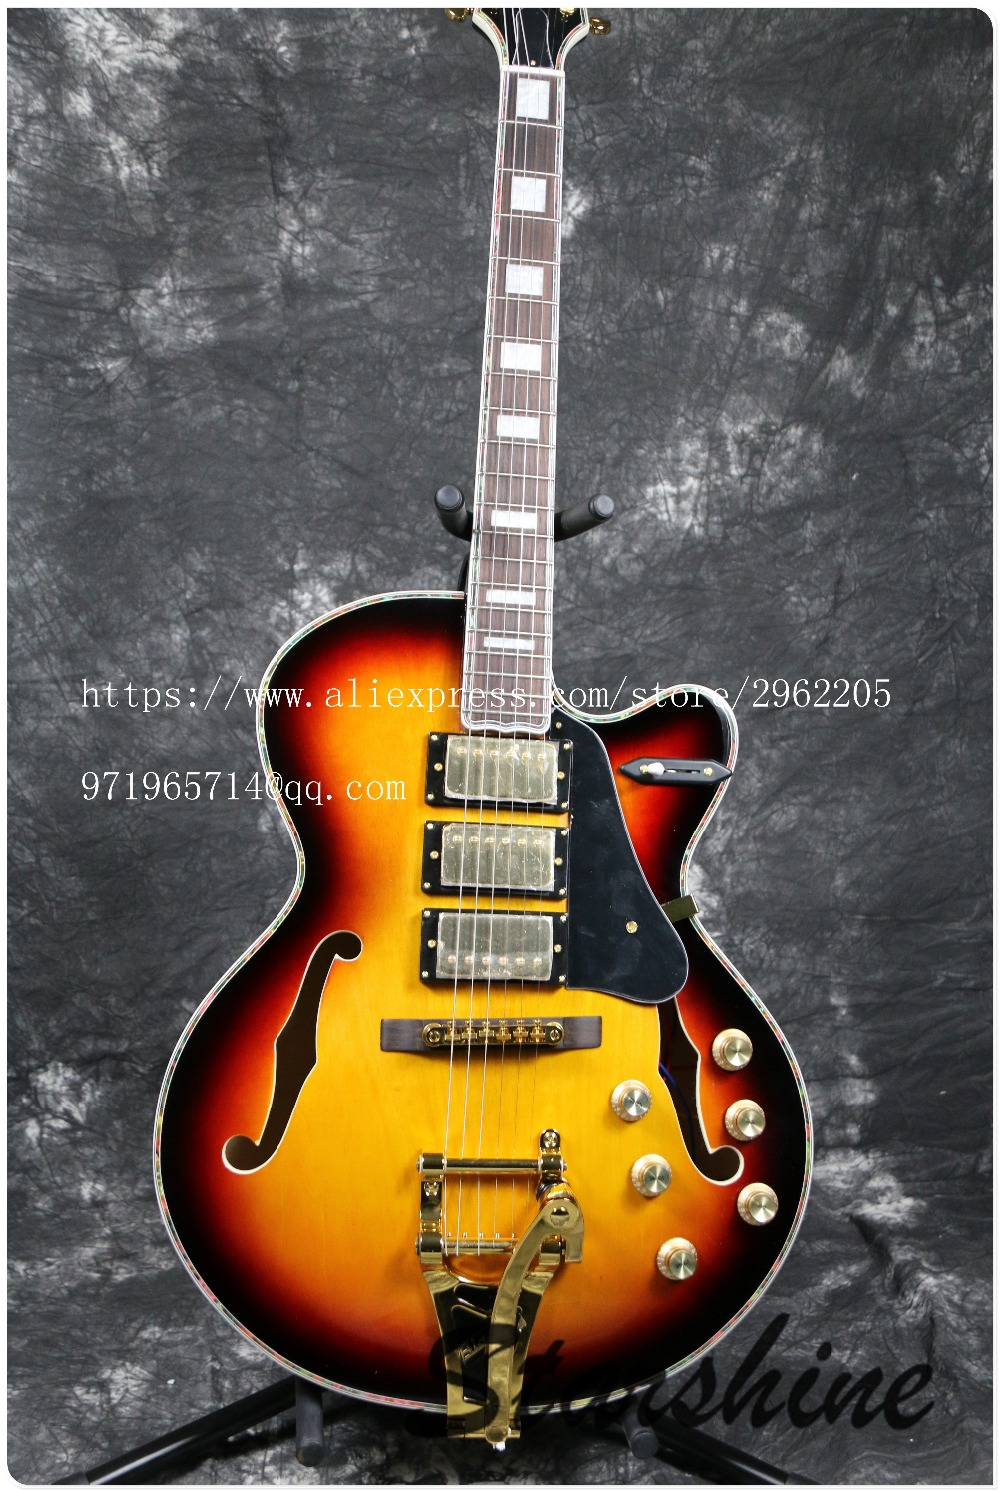 Wonderful Ibanez 5 Way Switch Thick Jbs Technologies Remote Starter Regular Bulldog Security Remote Starter With Keyless Entry Remote Start Wiring Youthful Dimarzio Dp100 Wiring Green2 Humbuckers 5 Way Switch Online Get Cheap Archtop Pickup  Aliexpress